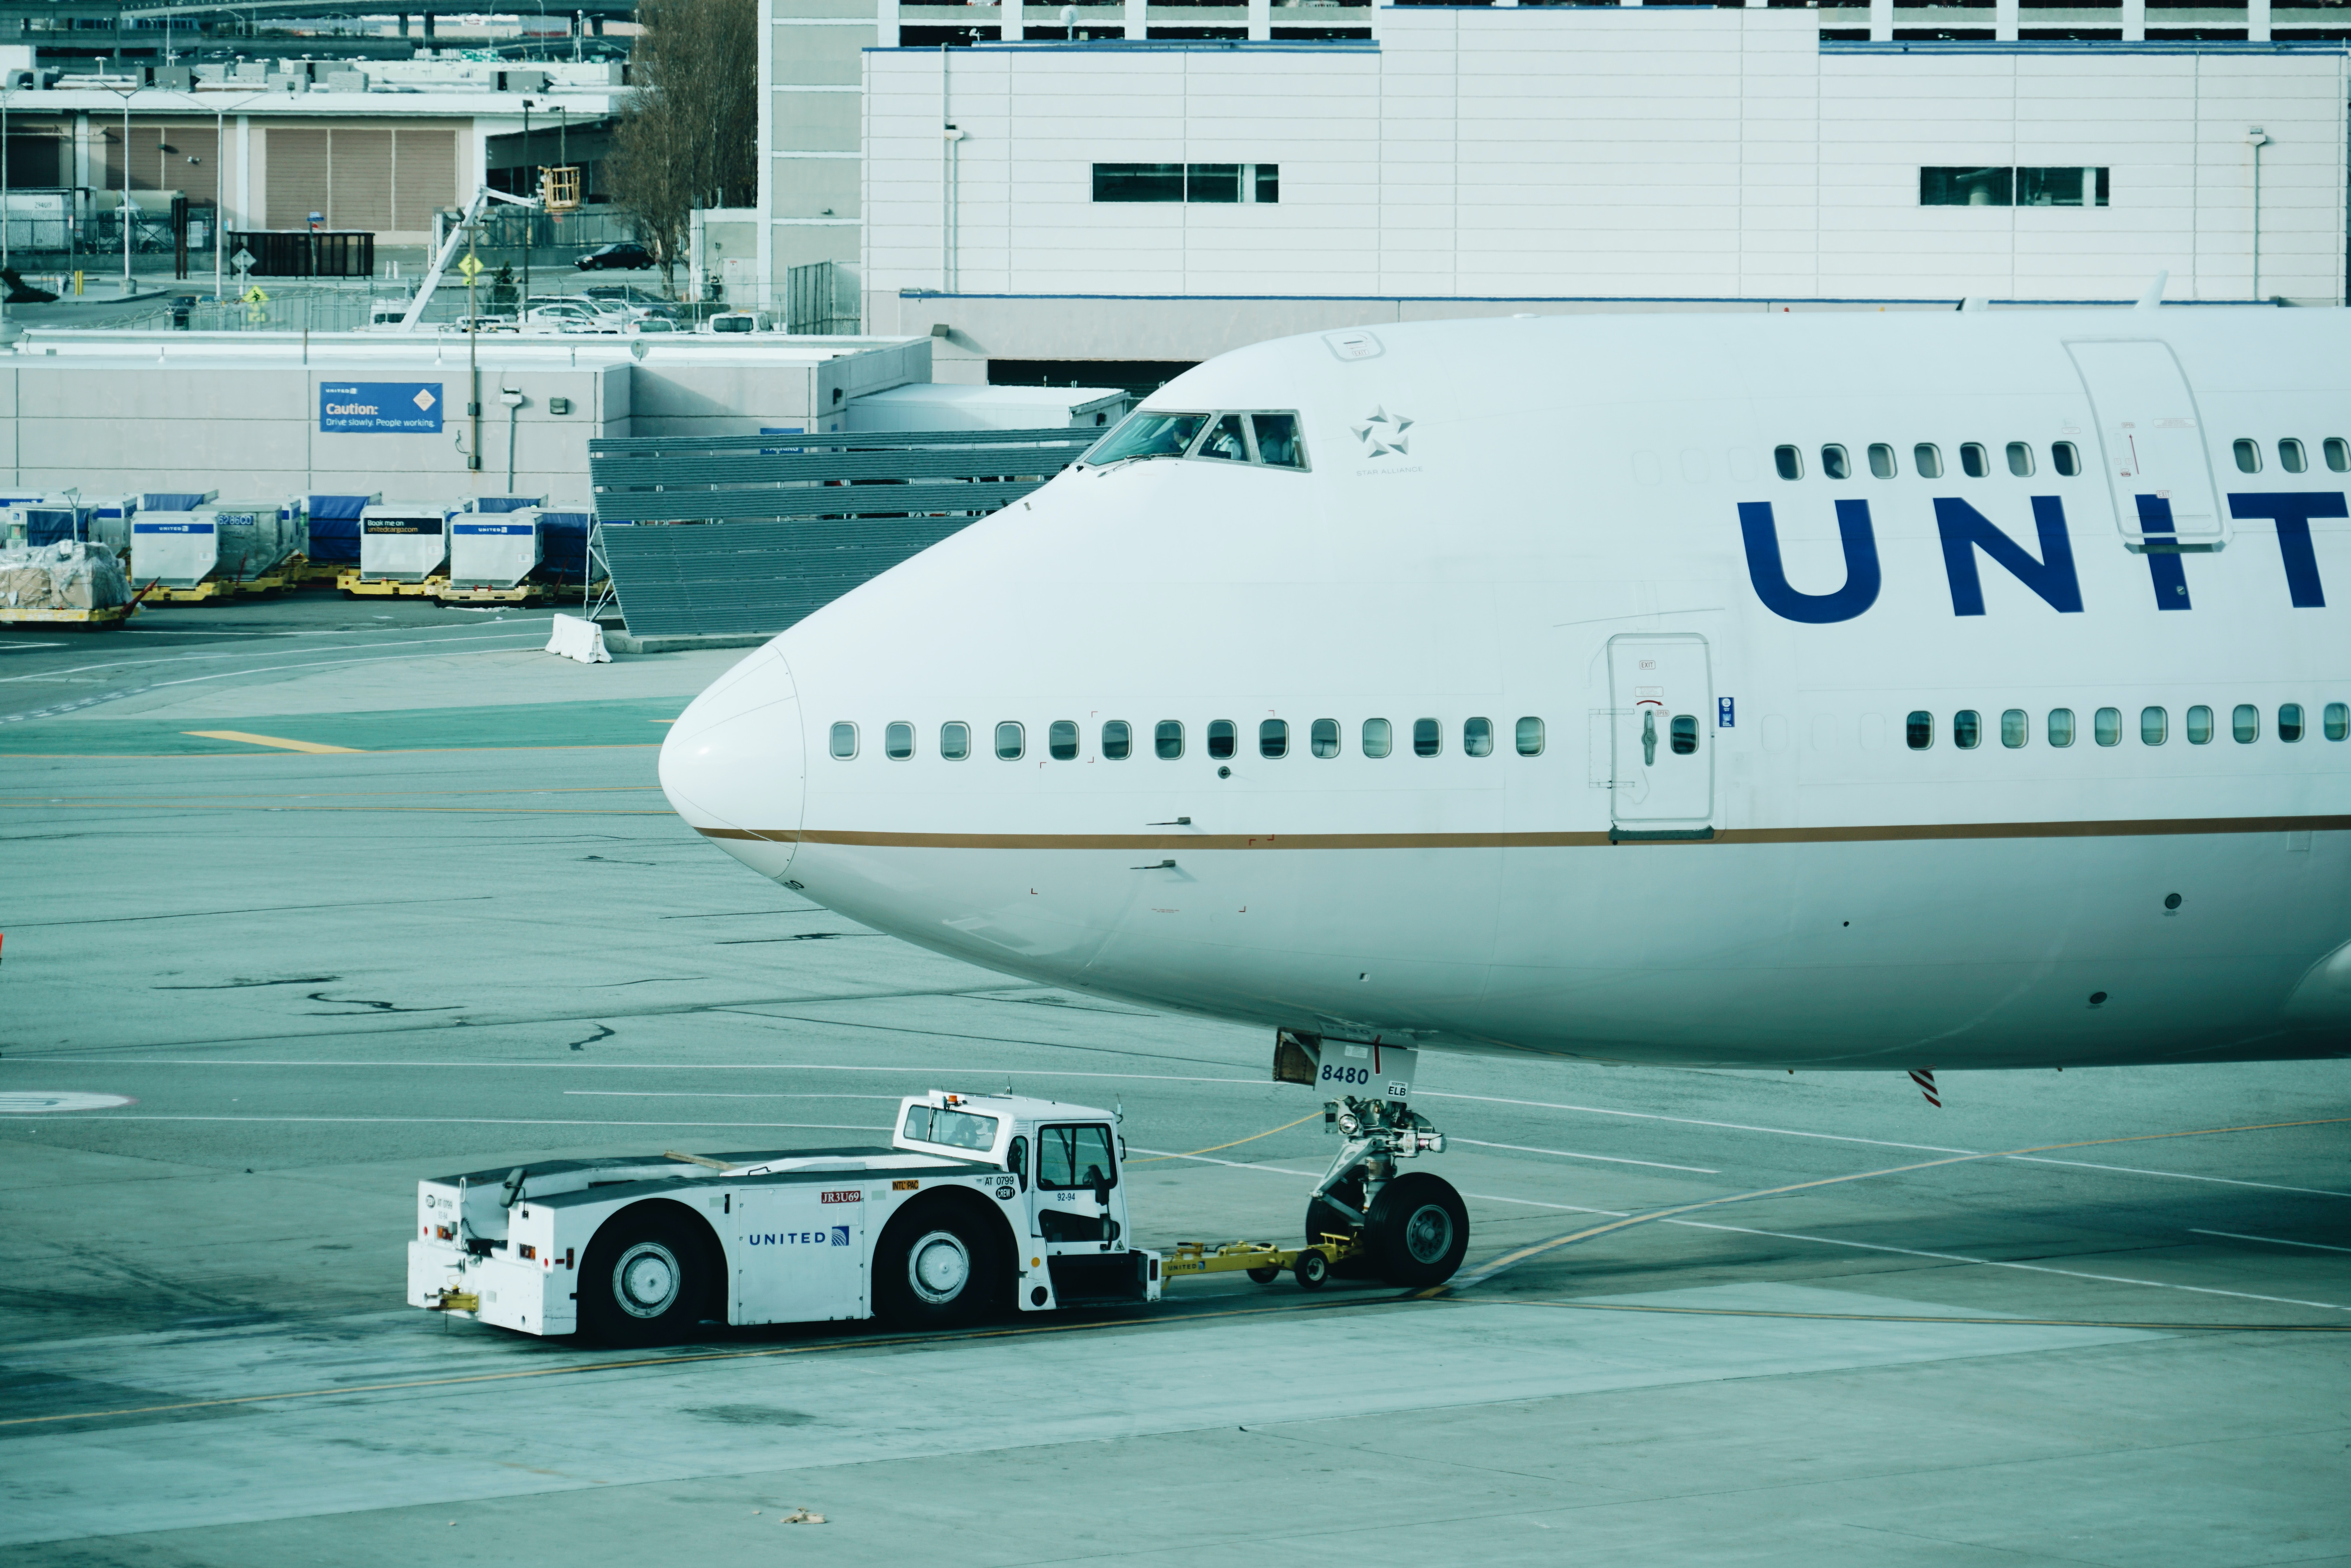 The front of an United airplane on the runway of San Francisco International Airport